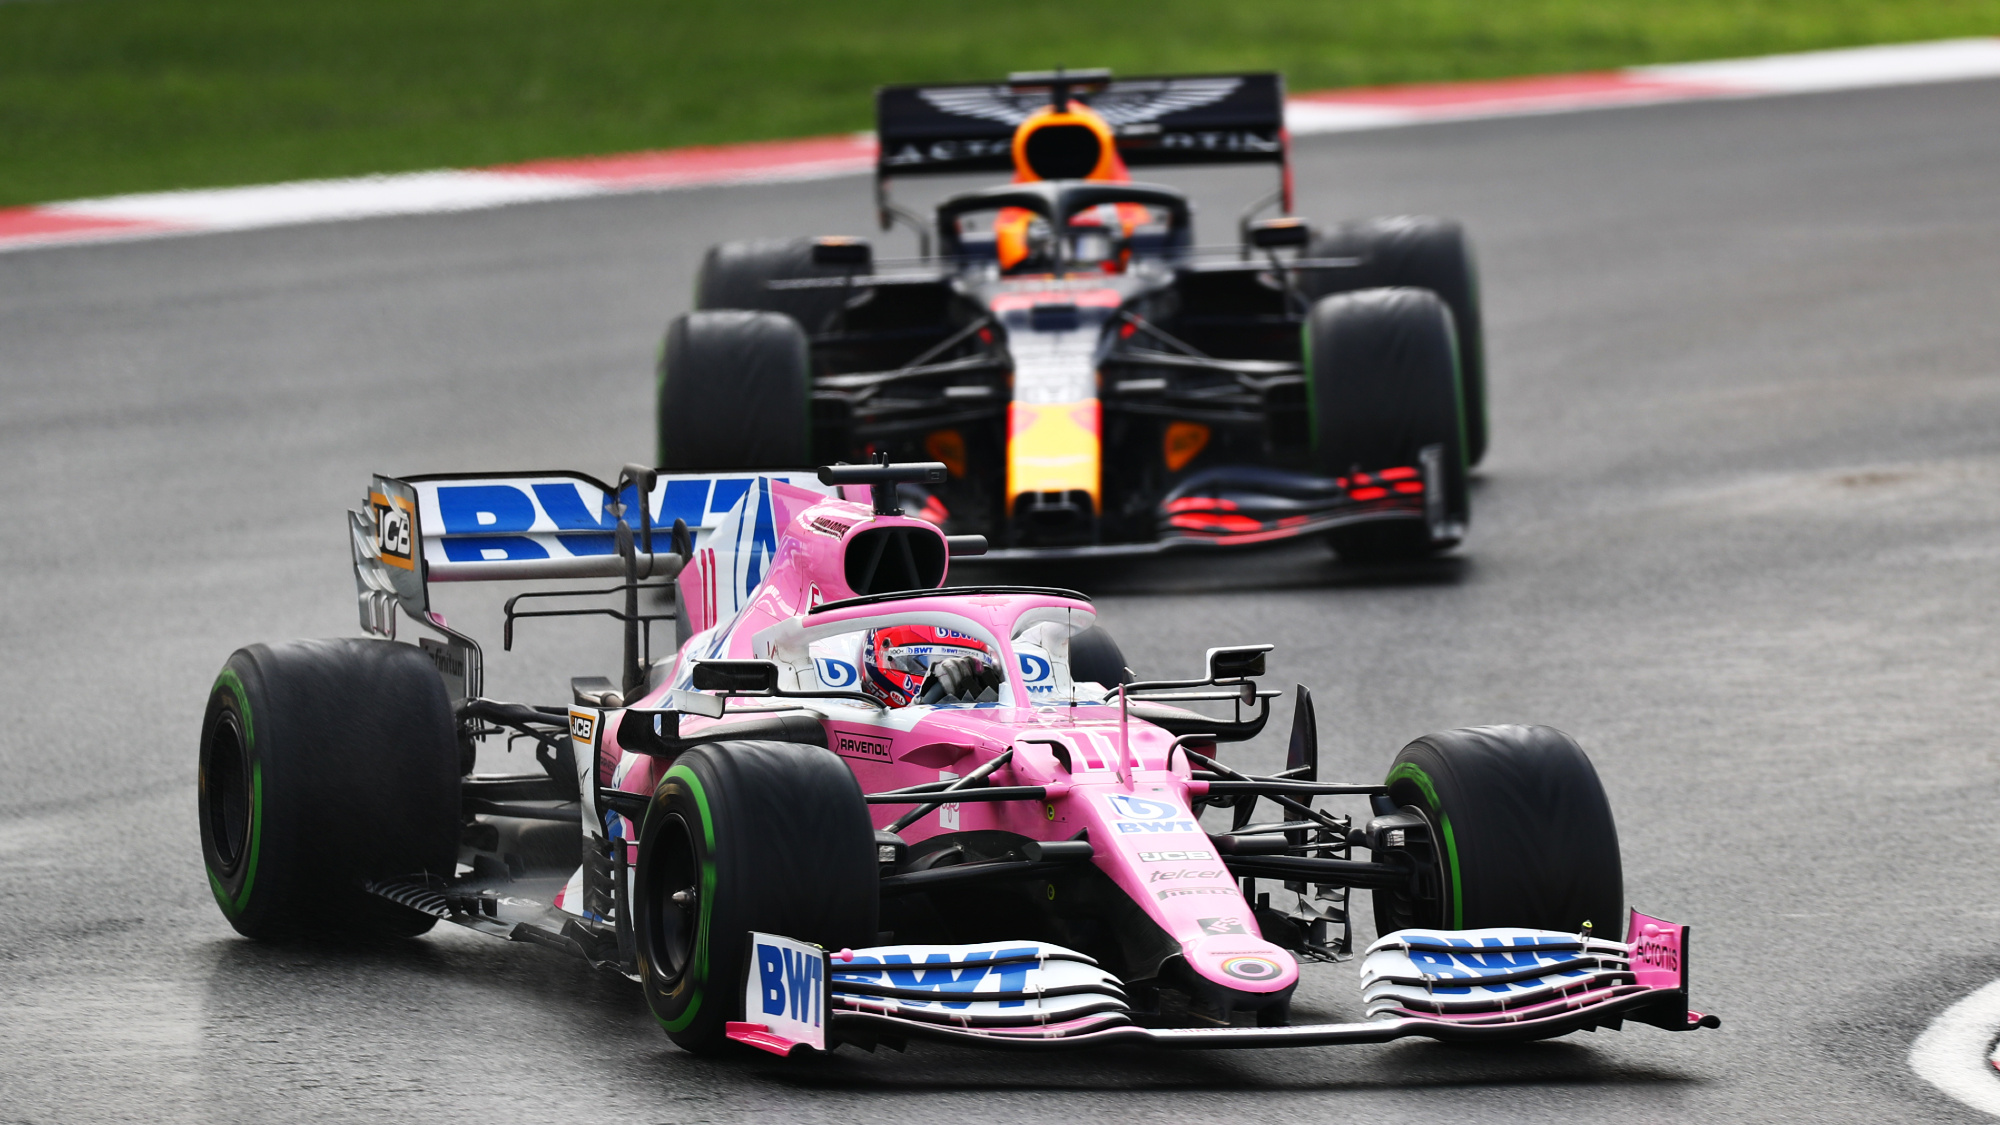 Perez will take sabbatical if Red Bull drive doesn't materialise